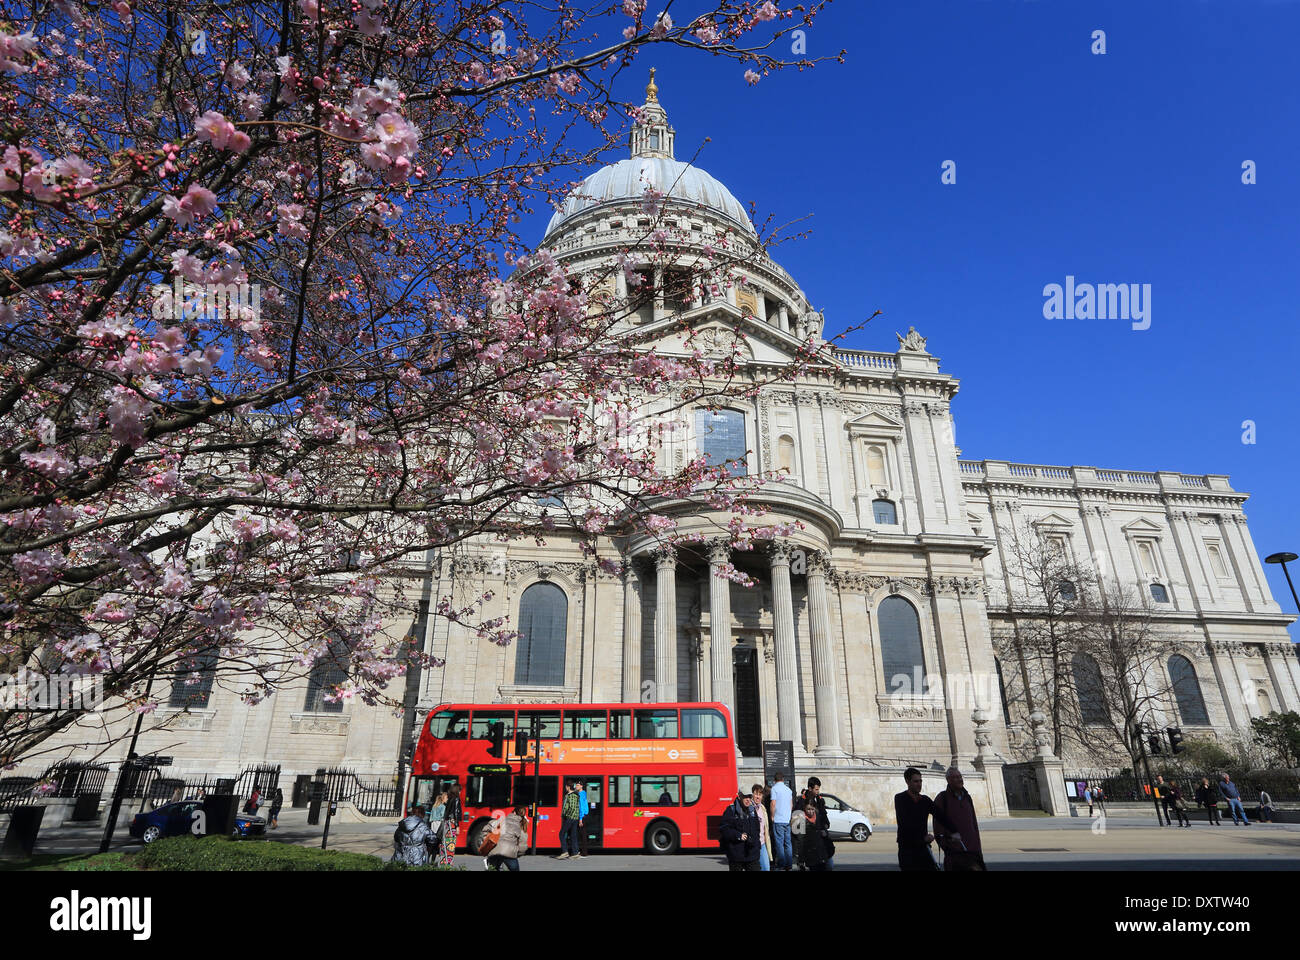 St Paul's Cathedral at spring time, with red buses driving past, in London, England, UK - Stock Image